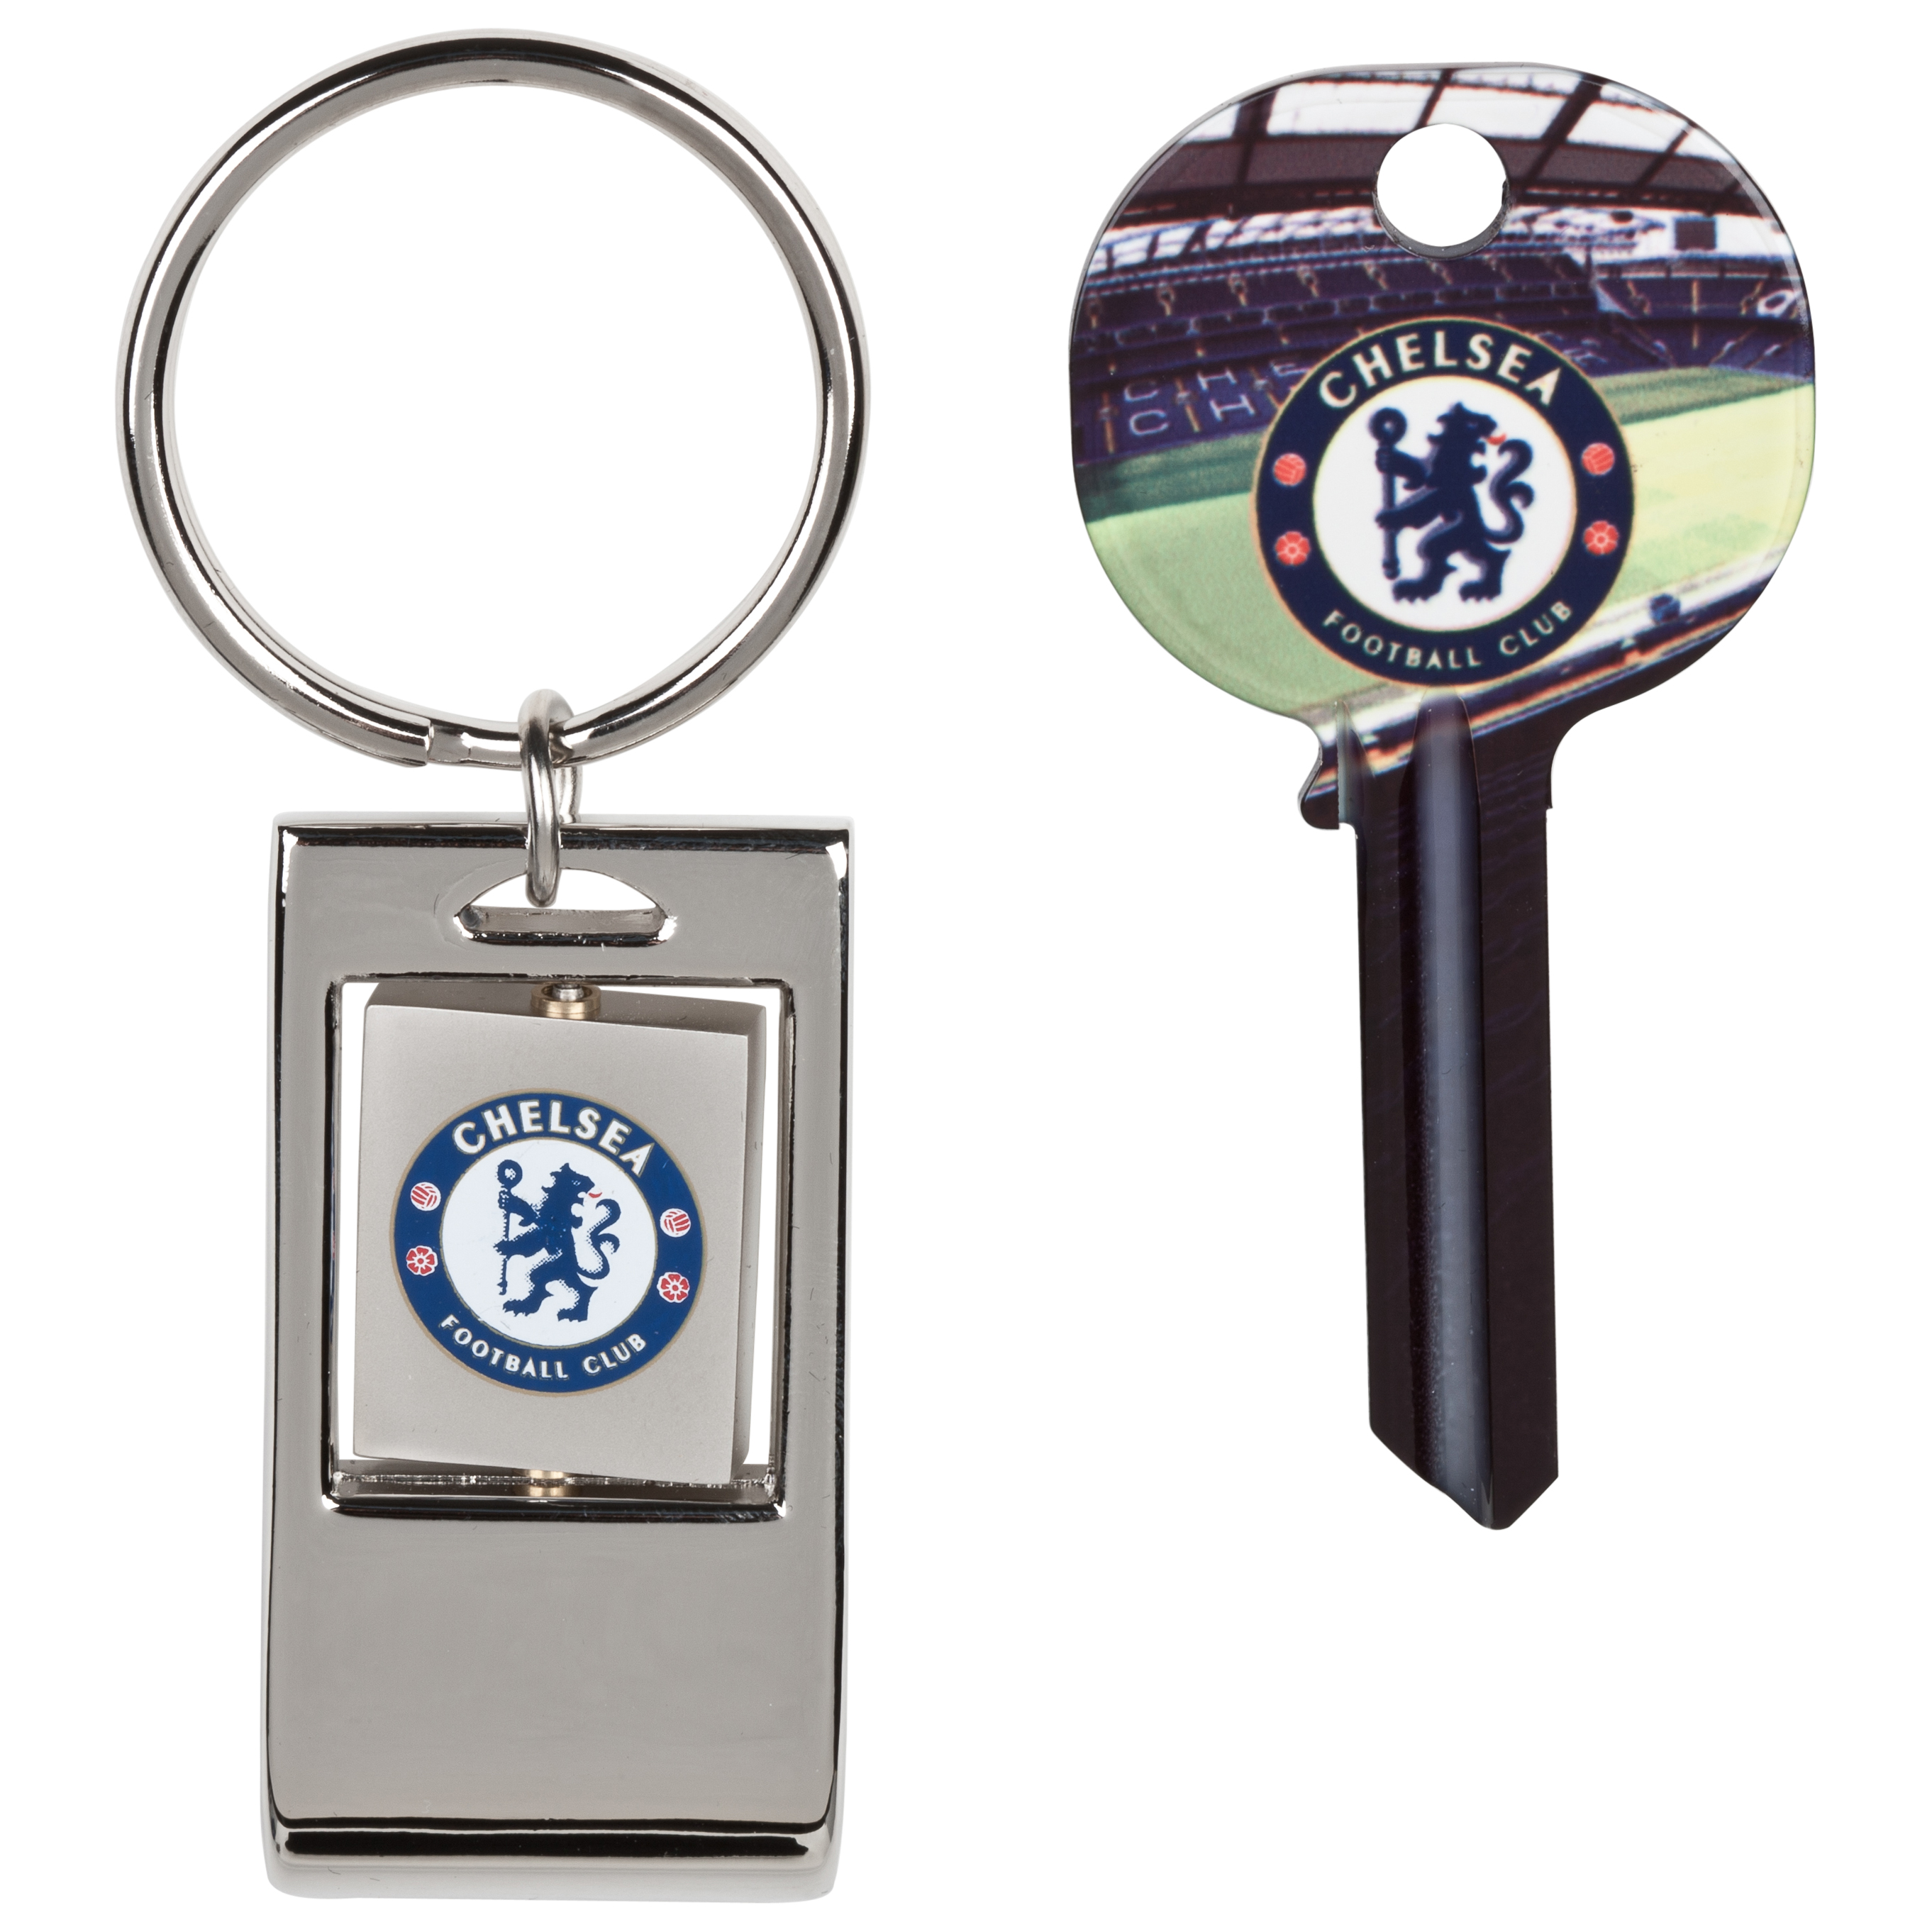 Chelsea Blank Key and Bottle Opener Key Ring Set in Shirt Shaped Tin